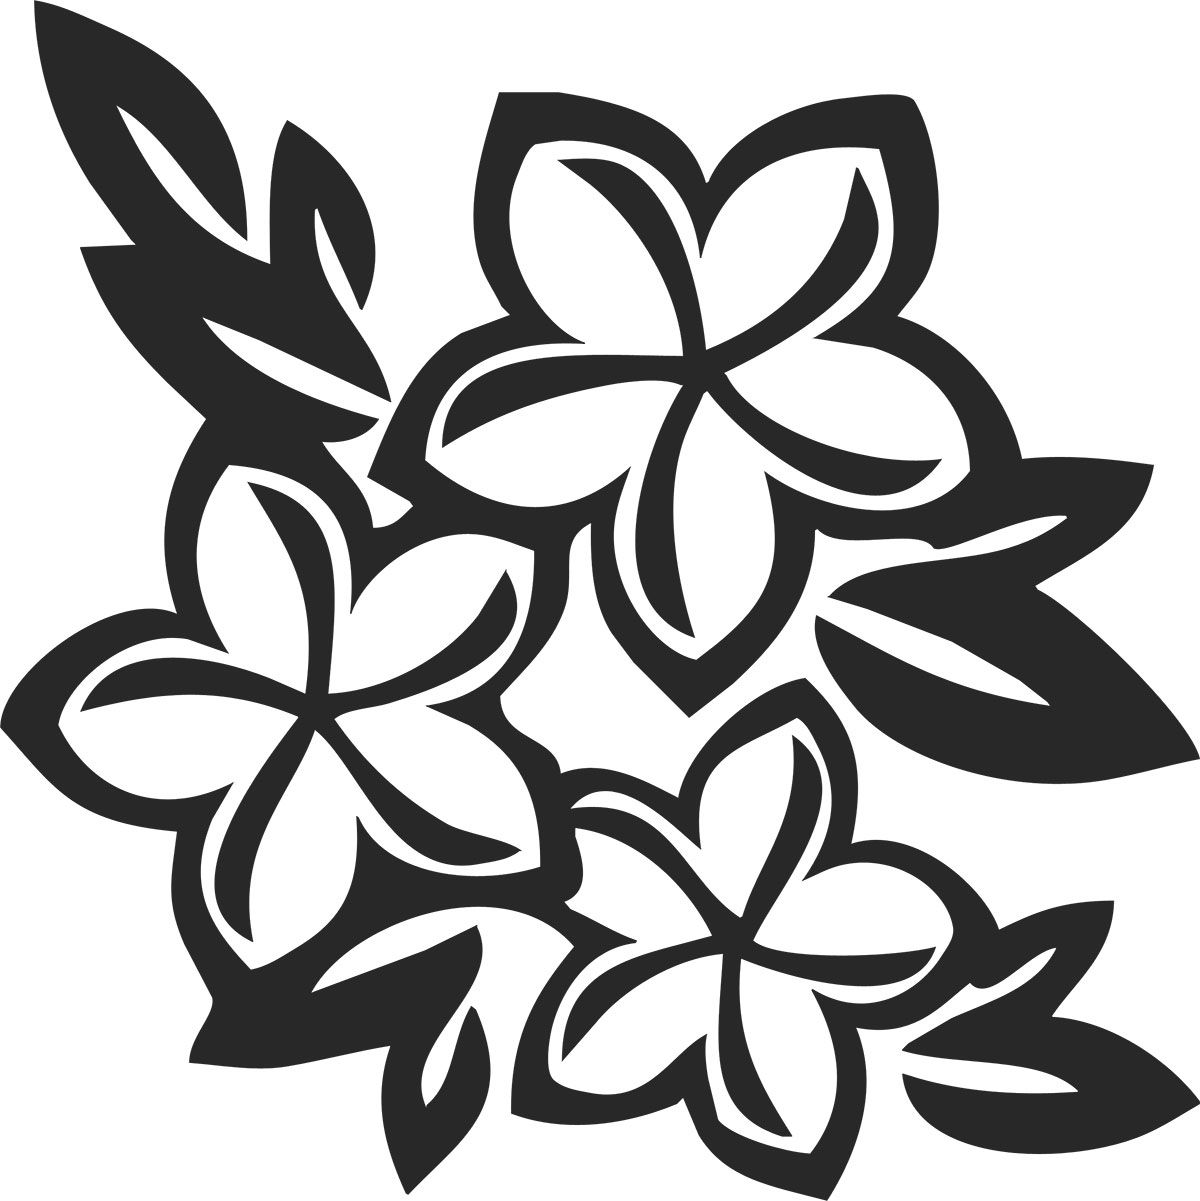 1200x1201 Flower Patterns Outlines Amp Silhouettes Flower